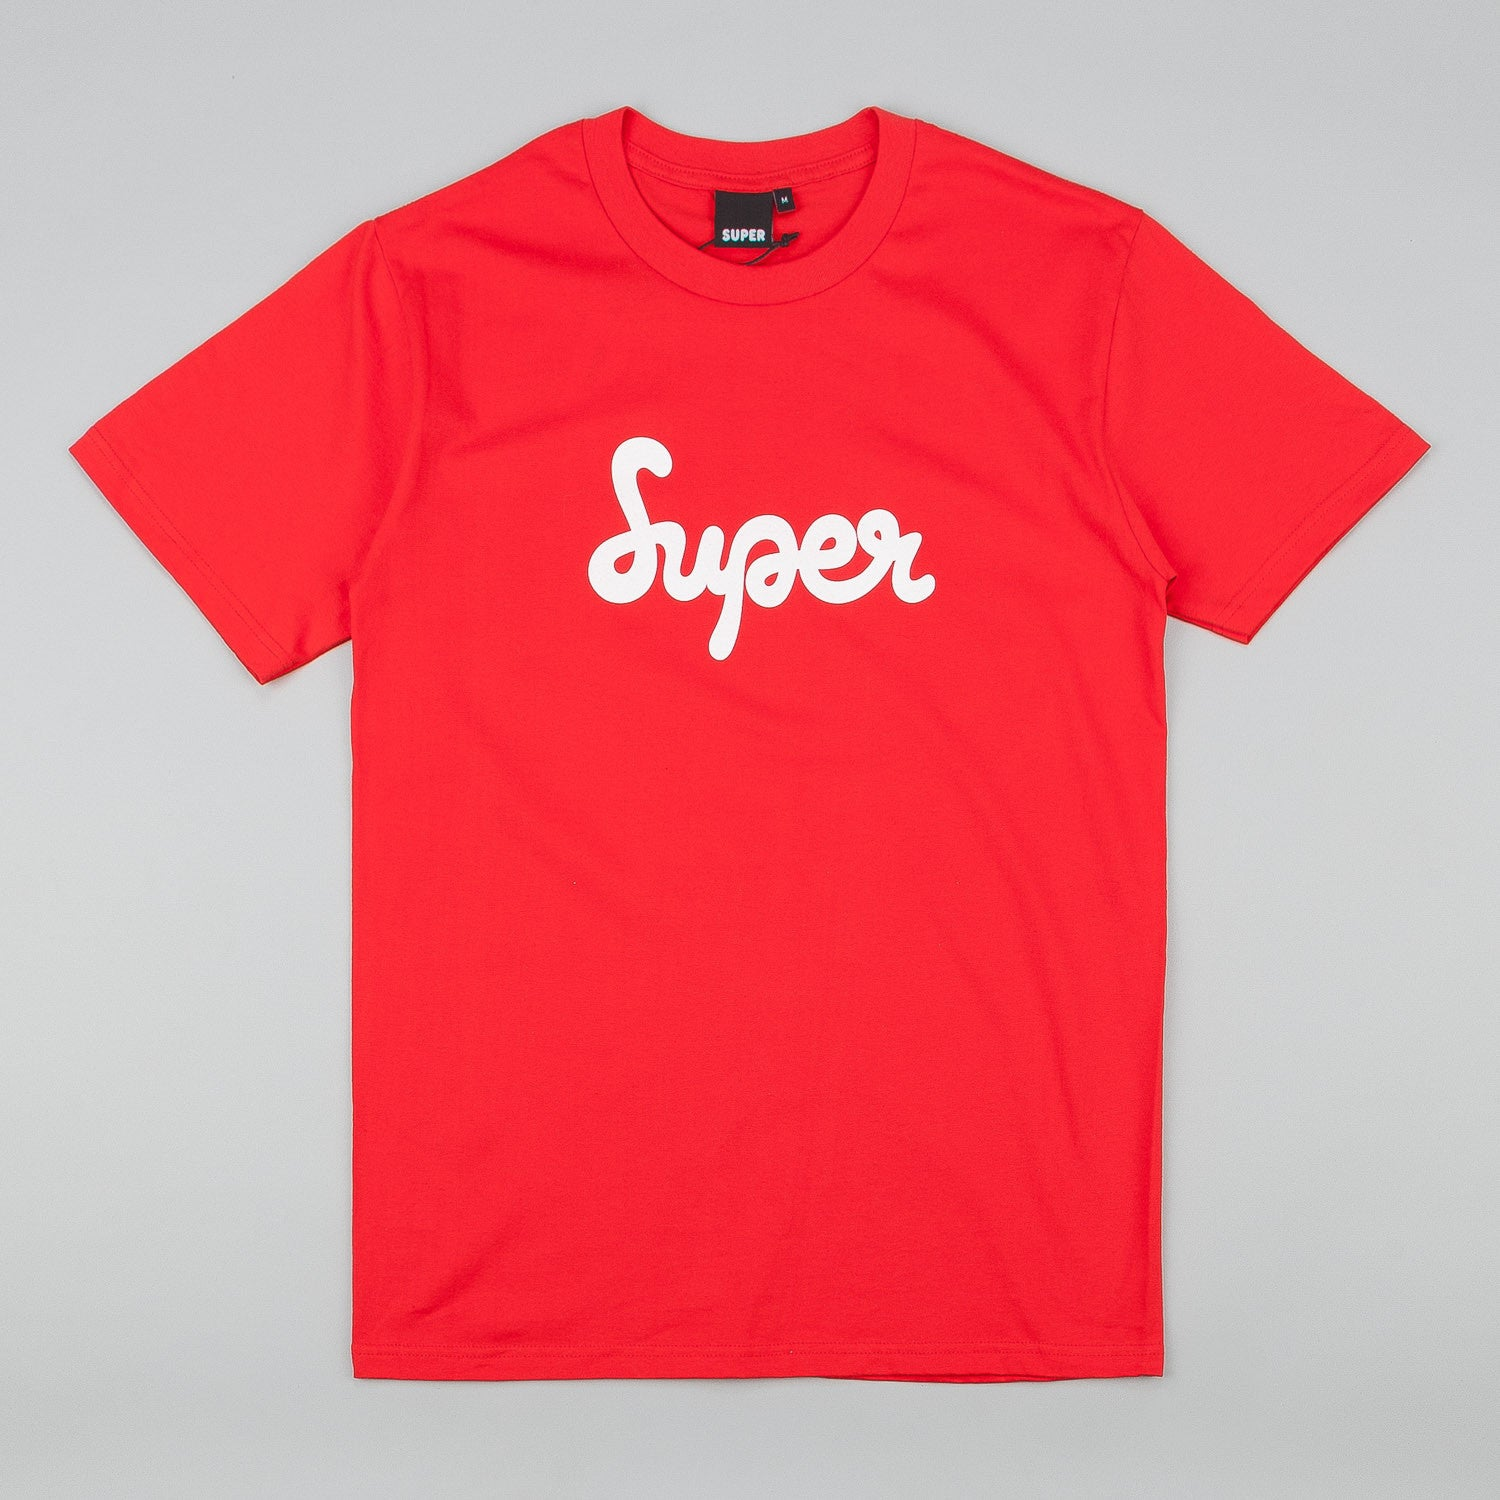 Colorsuper Signature MKIII T-Shirt